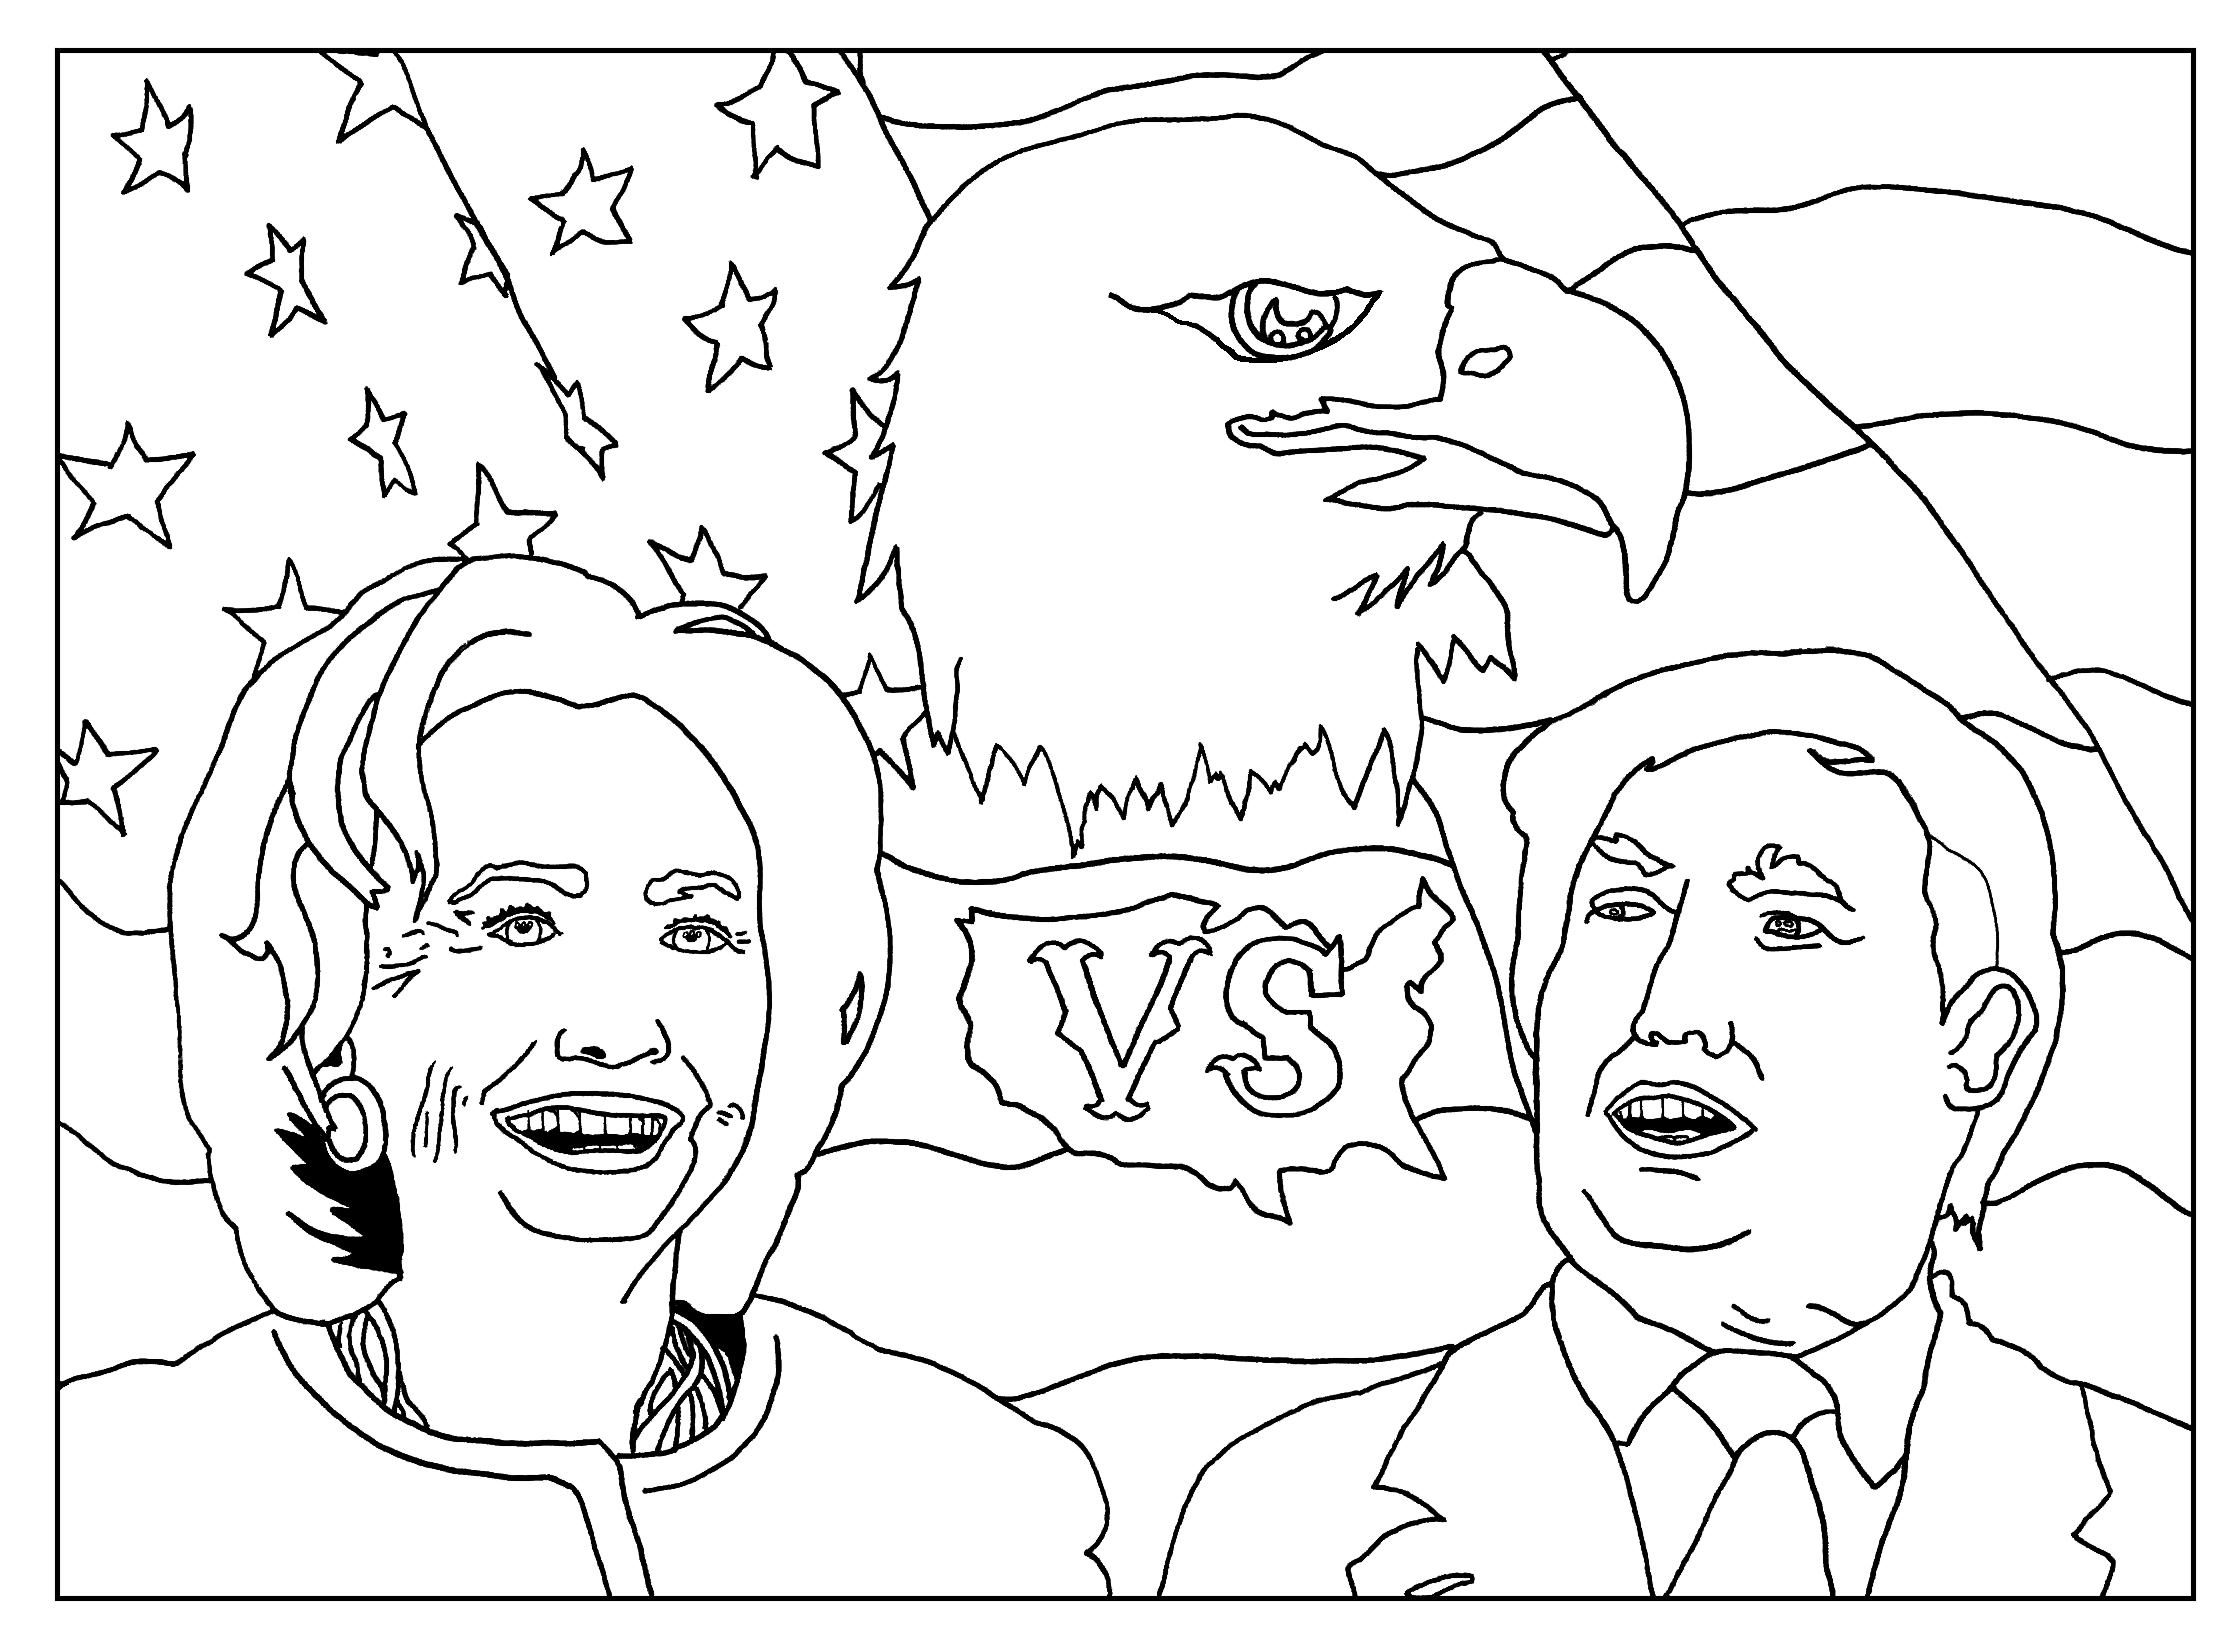 Coloring Page Inspired by the 2016 Us Presidential Elections Gallery Of Funny Hillary Clinton Meme Coloring Page for Adults Hilarious Gallery